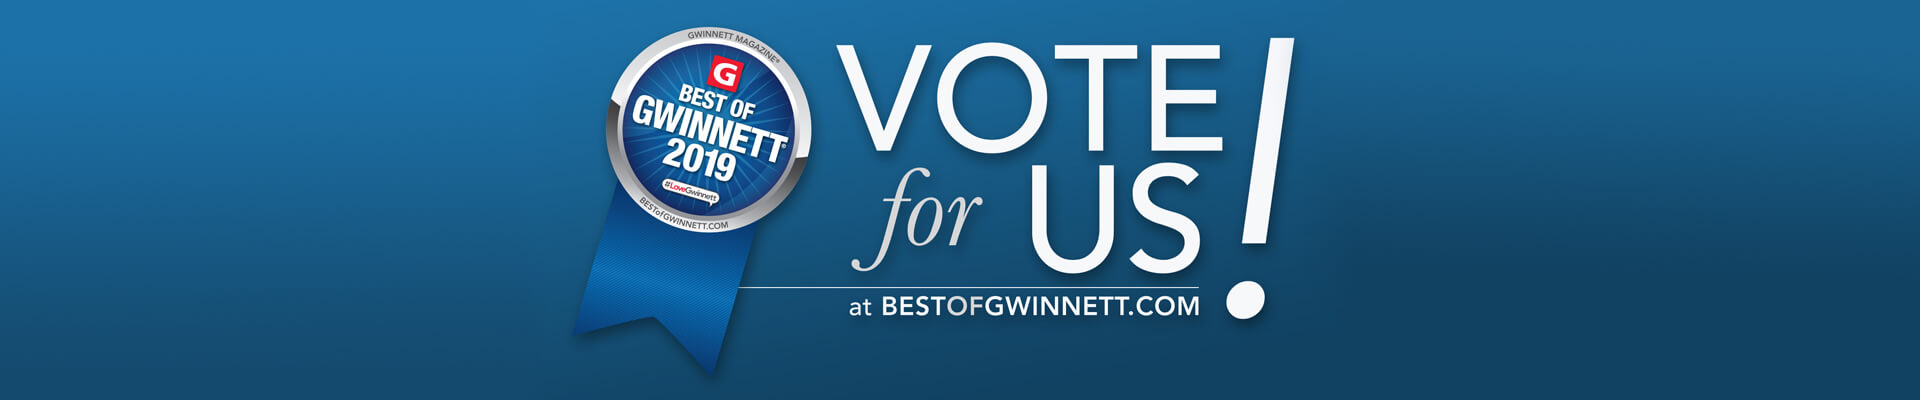 vote for us banner best of gwinnet